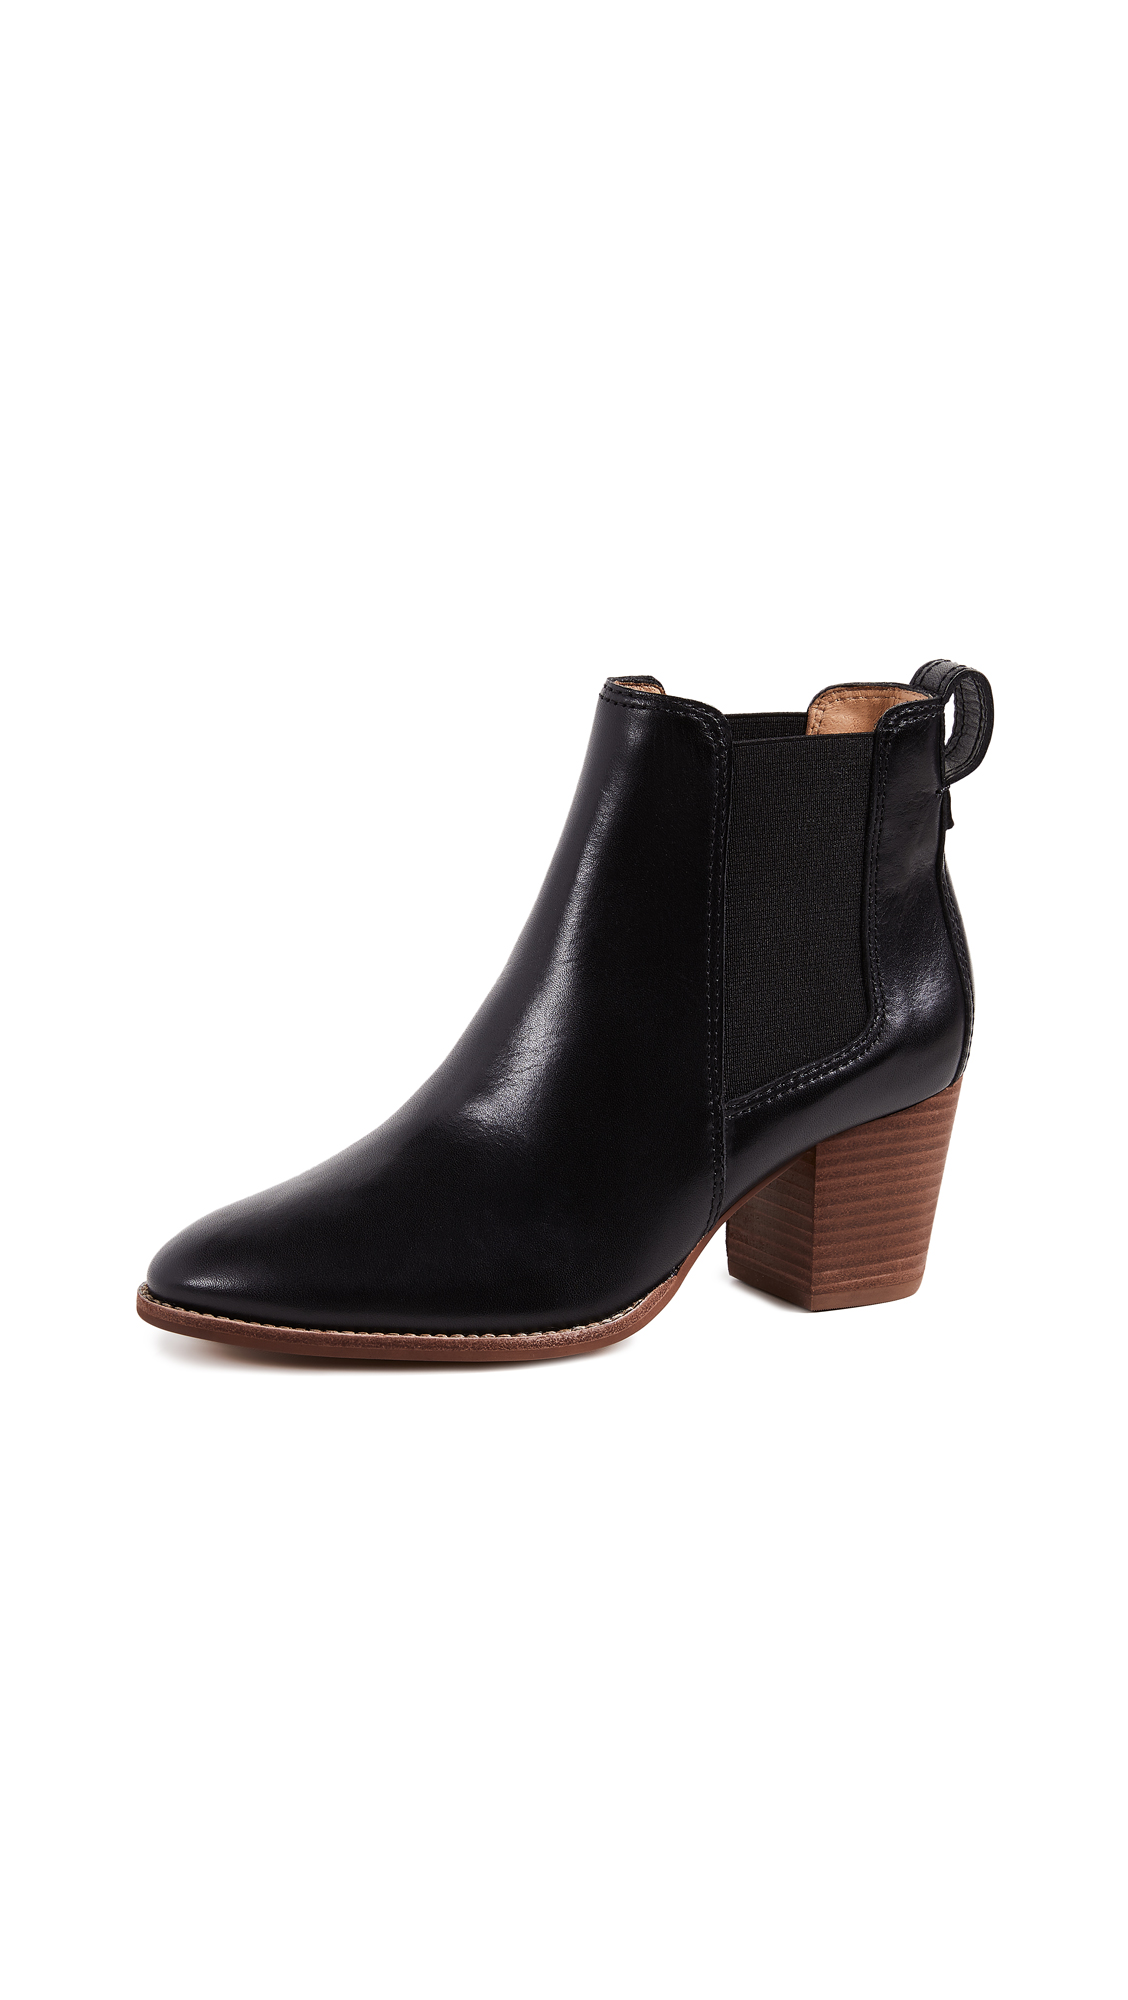 Madewell The Regan Boots - True Black